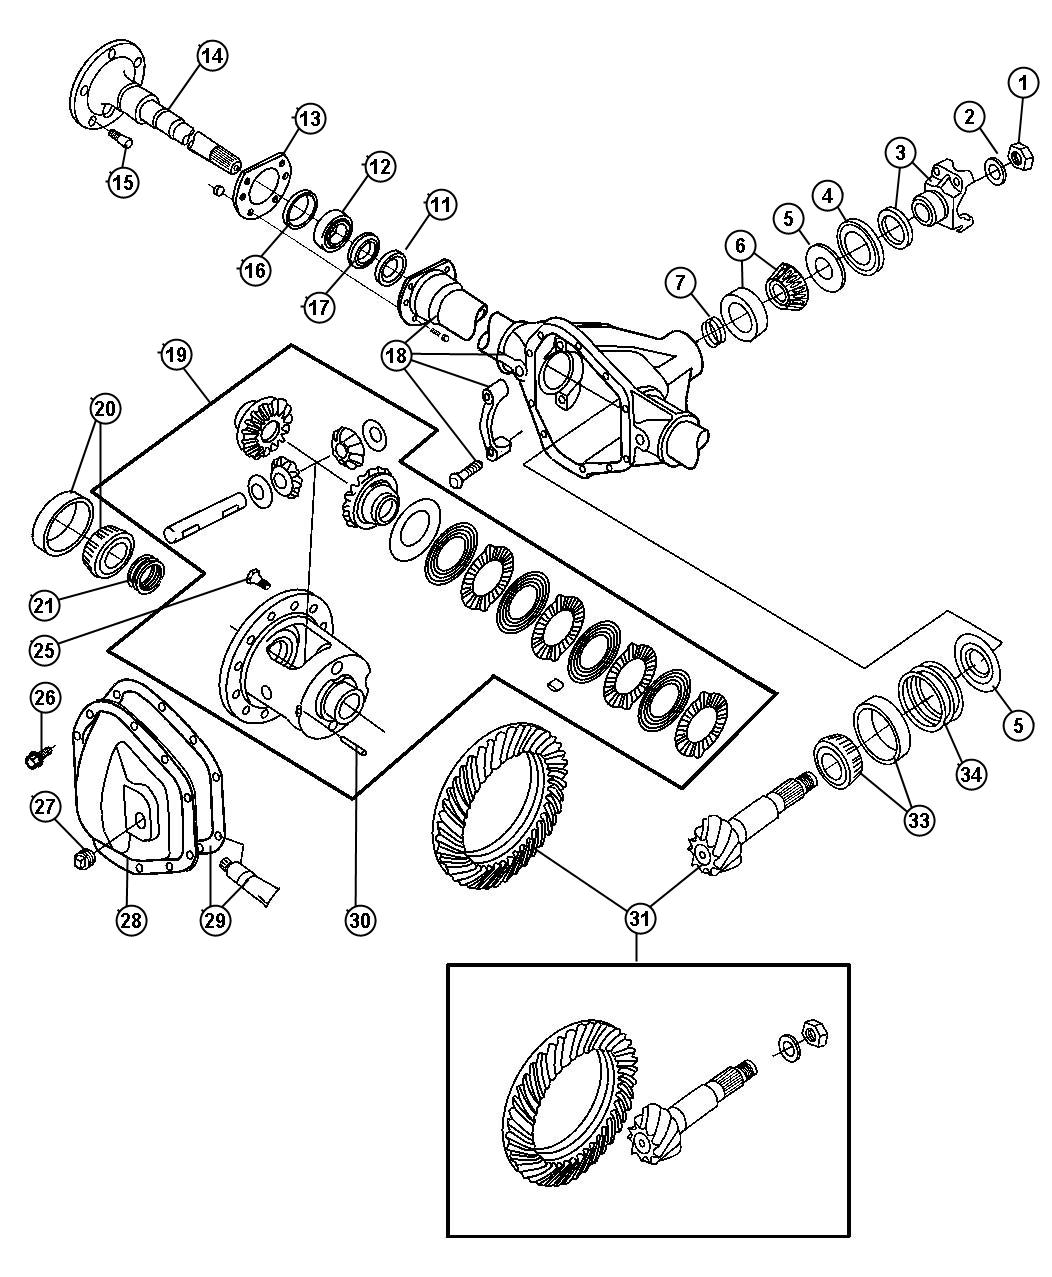 Wiring Diagram Database: Ford F350 Front Hub Assembly Diagram